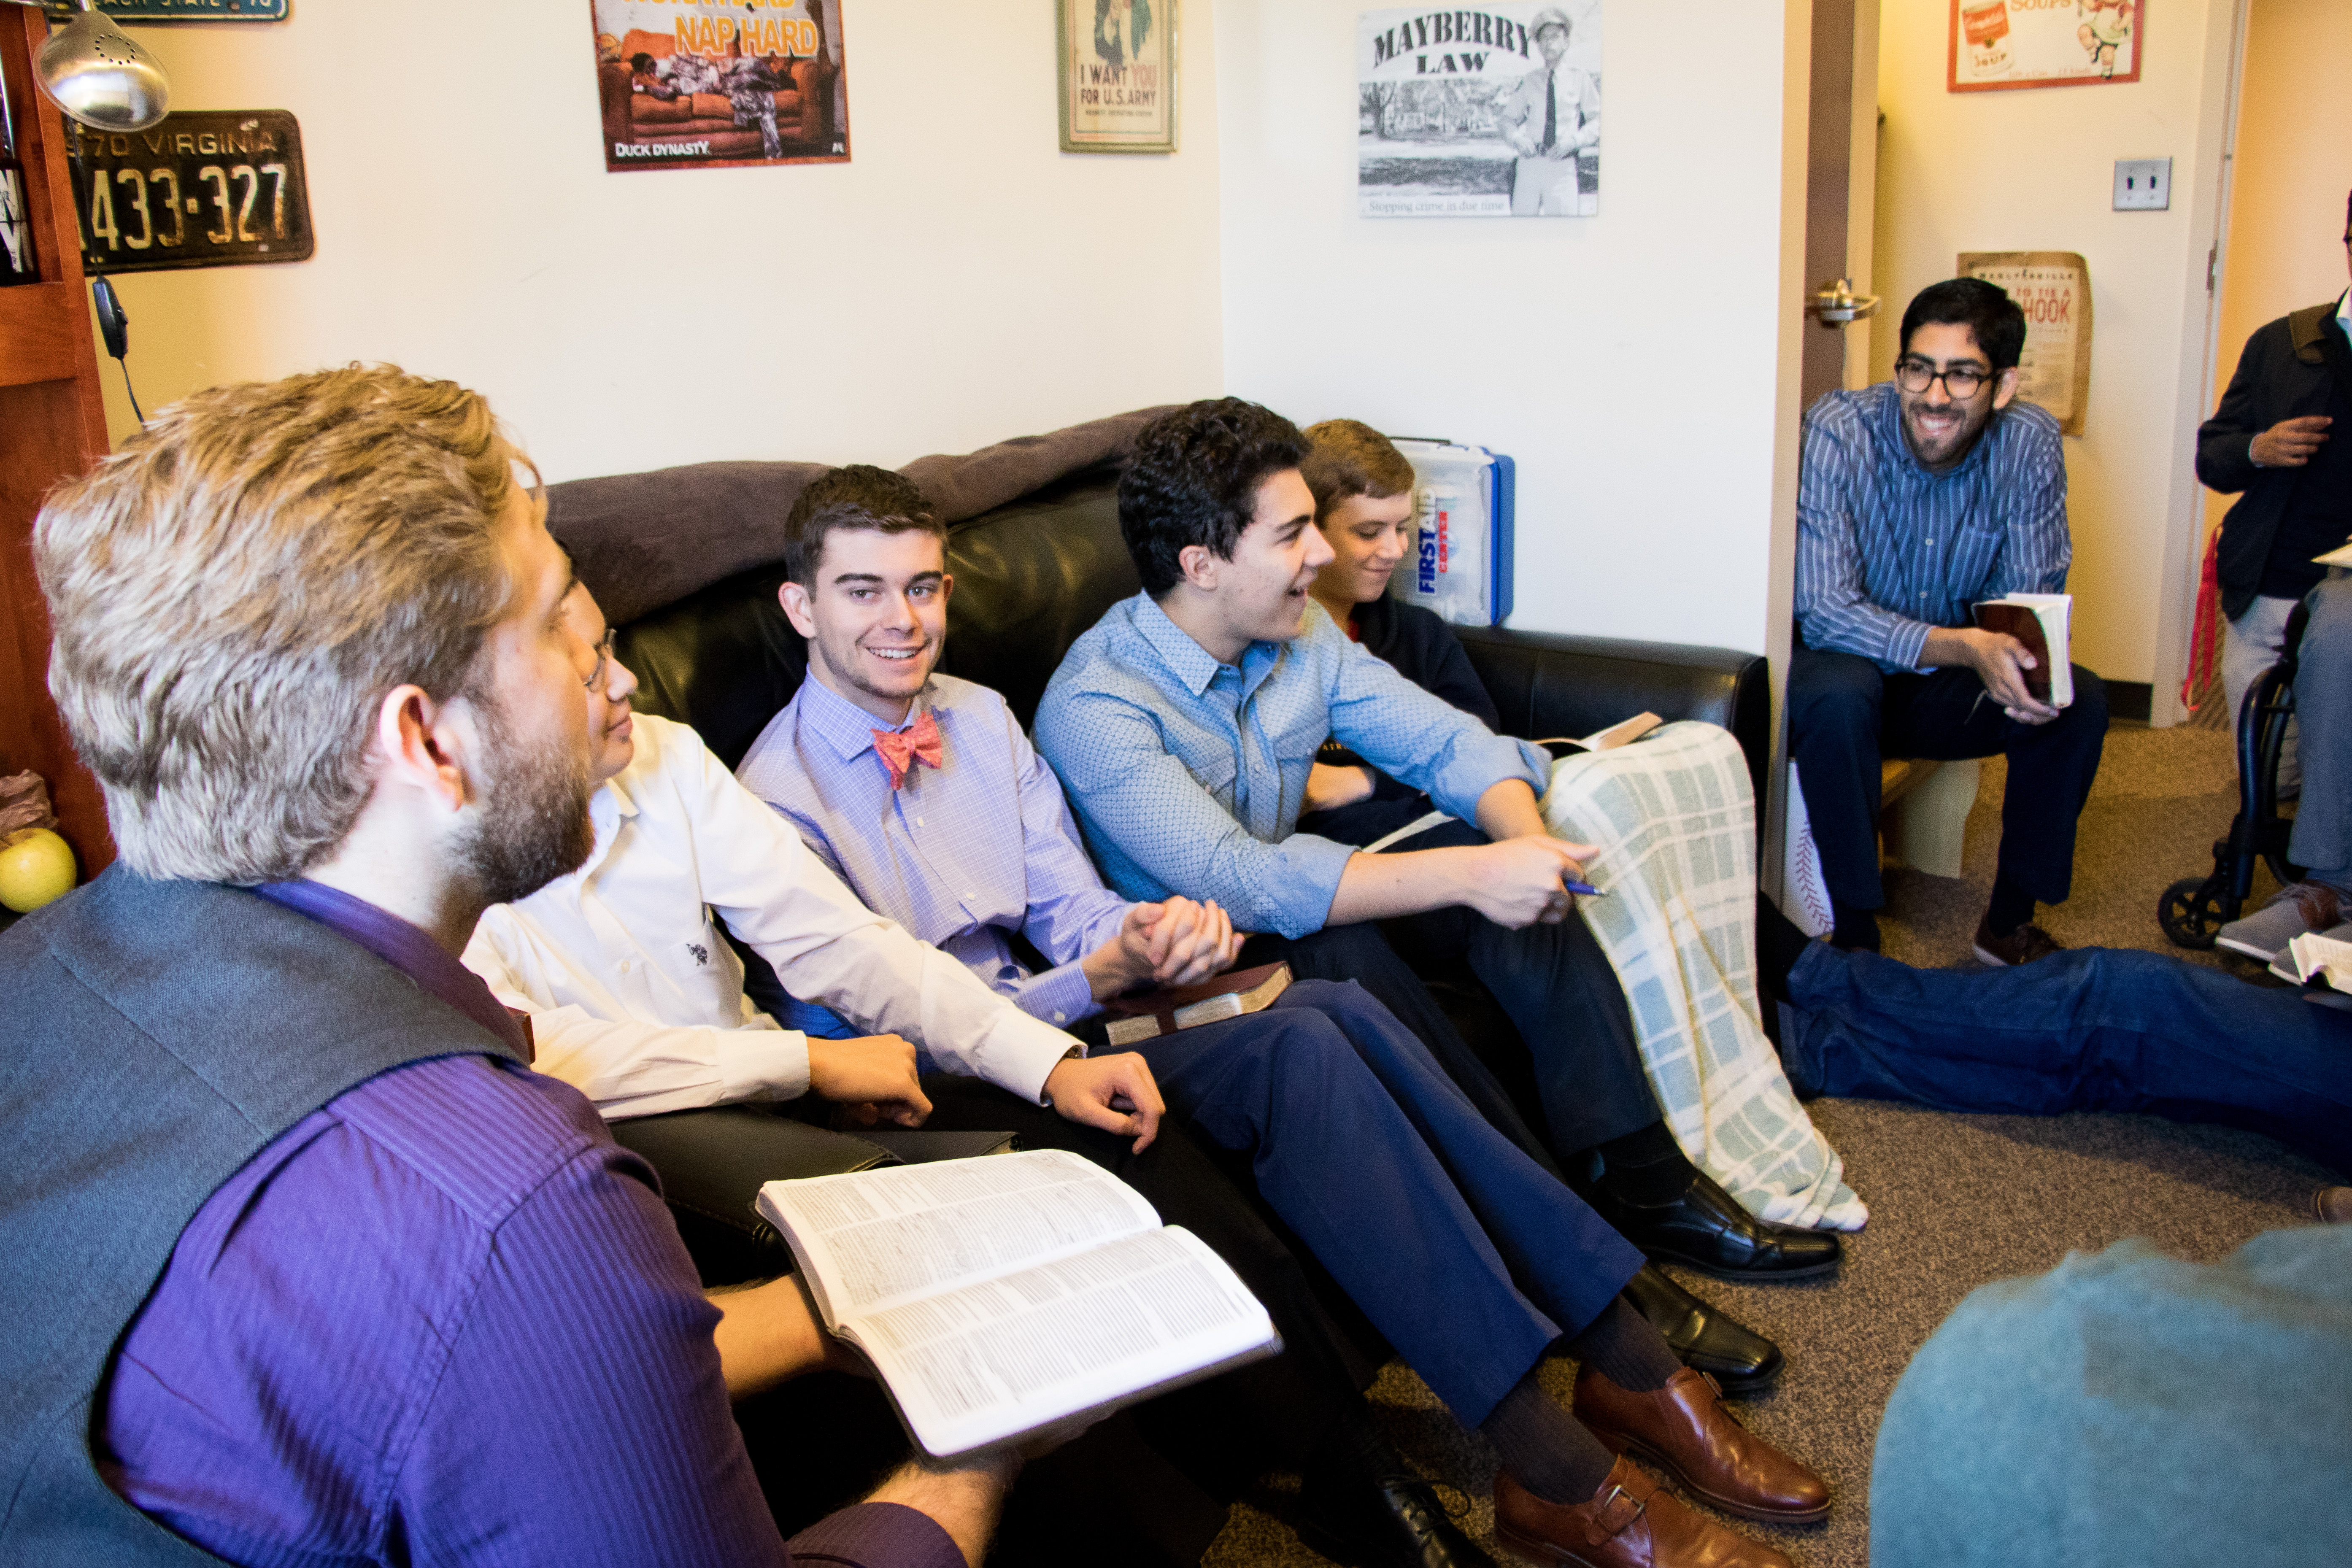 Patrick Henry College Students meet for wing chapel in a men's dorm